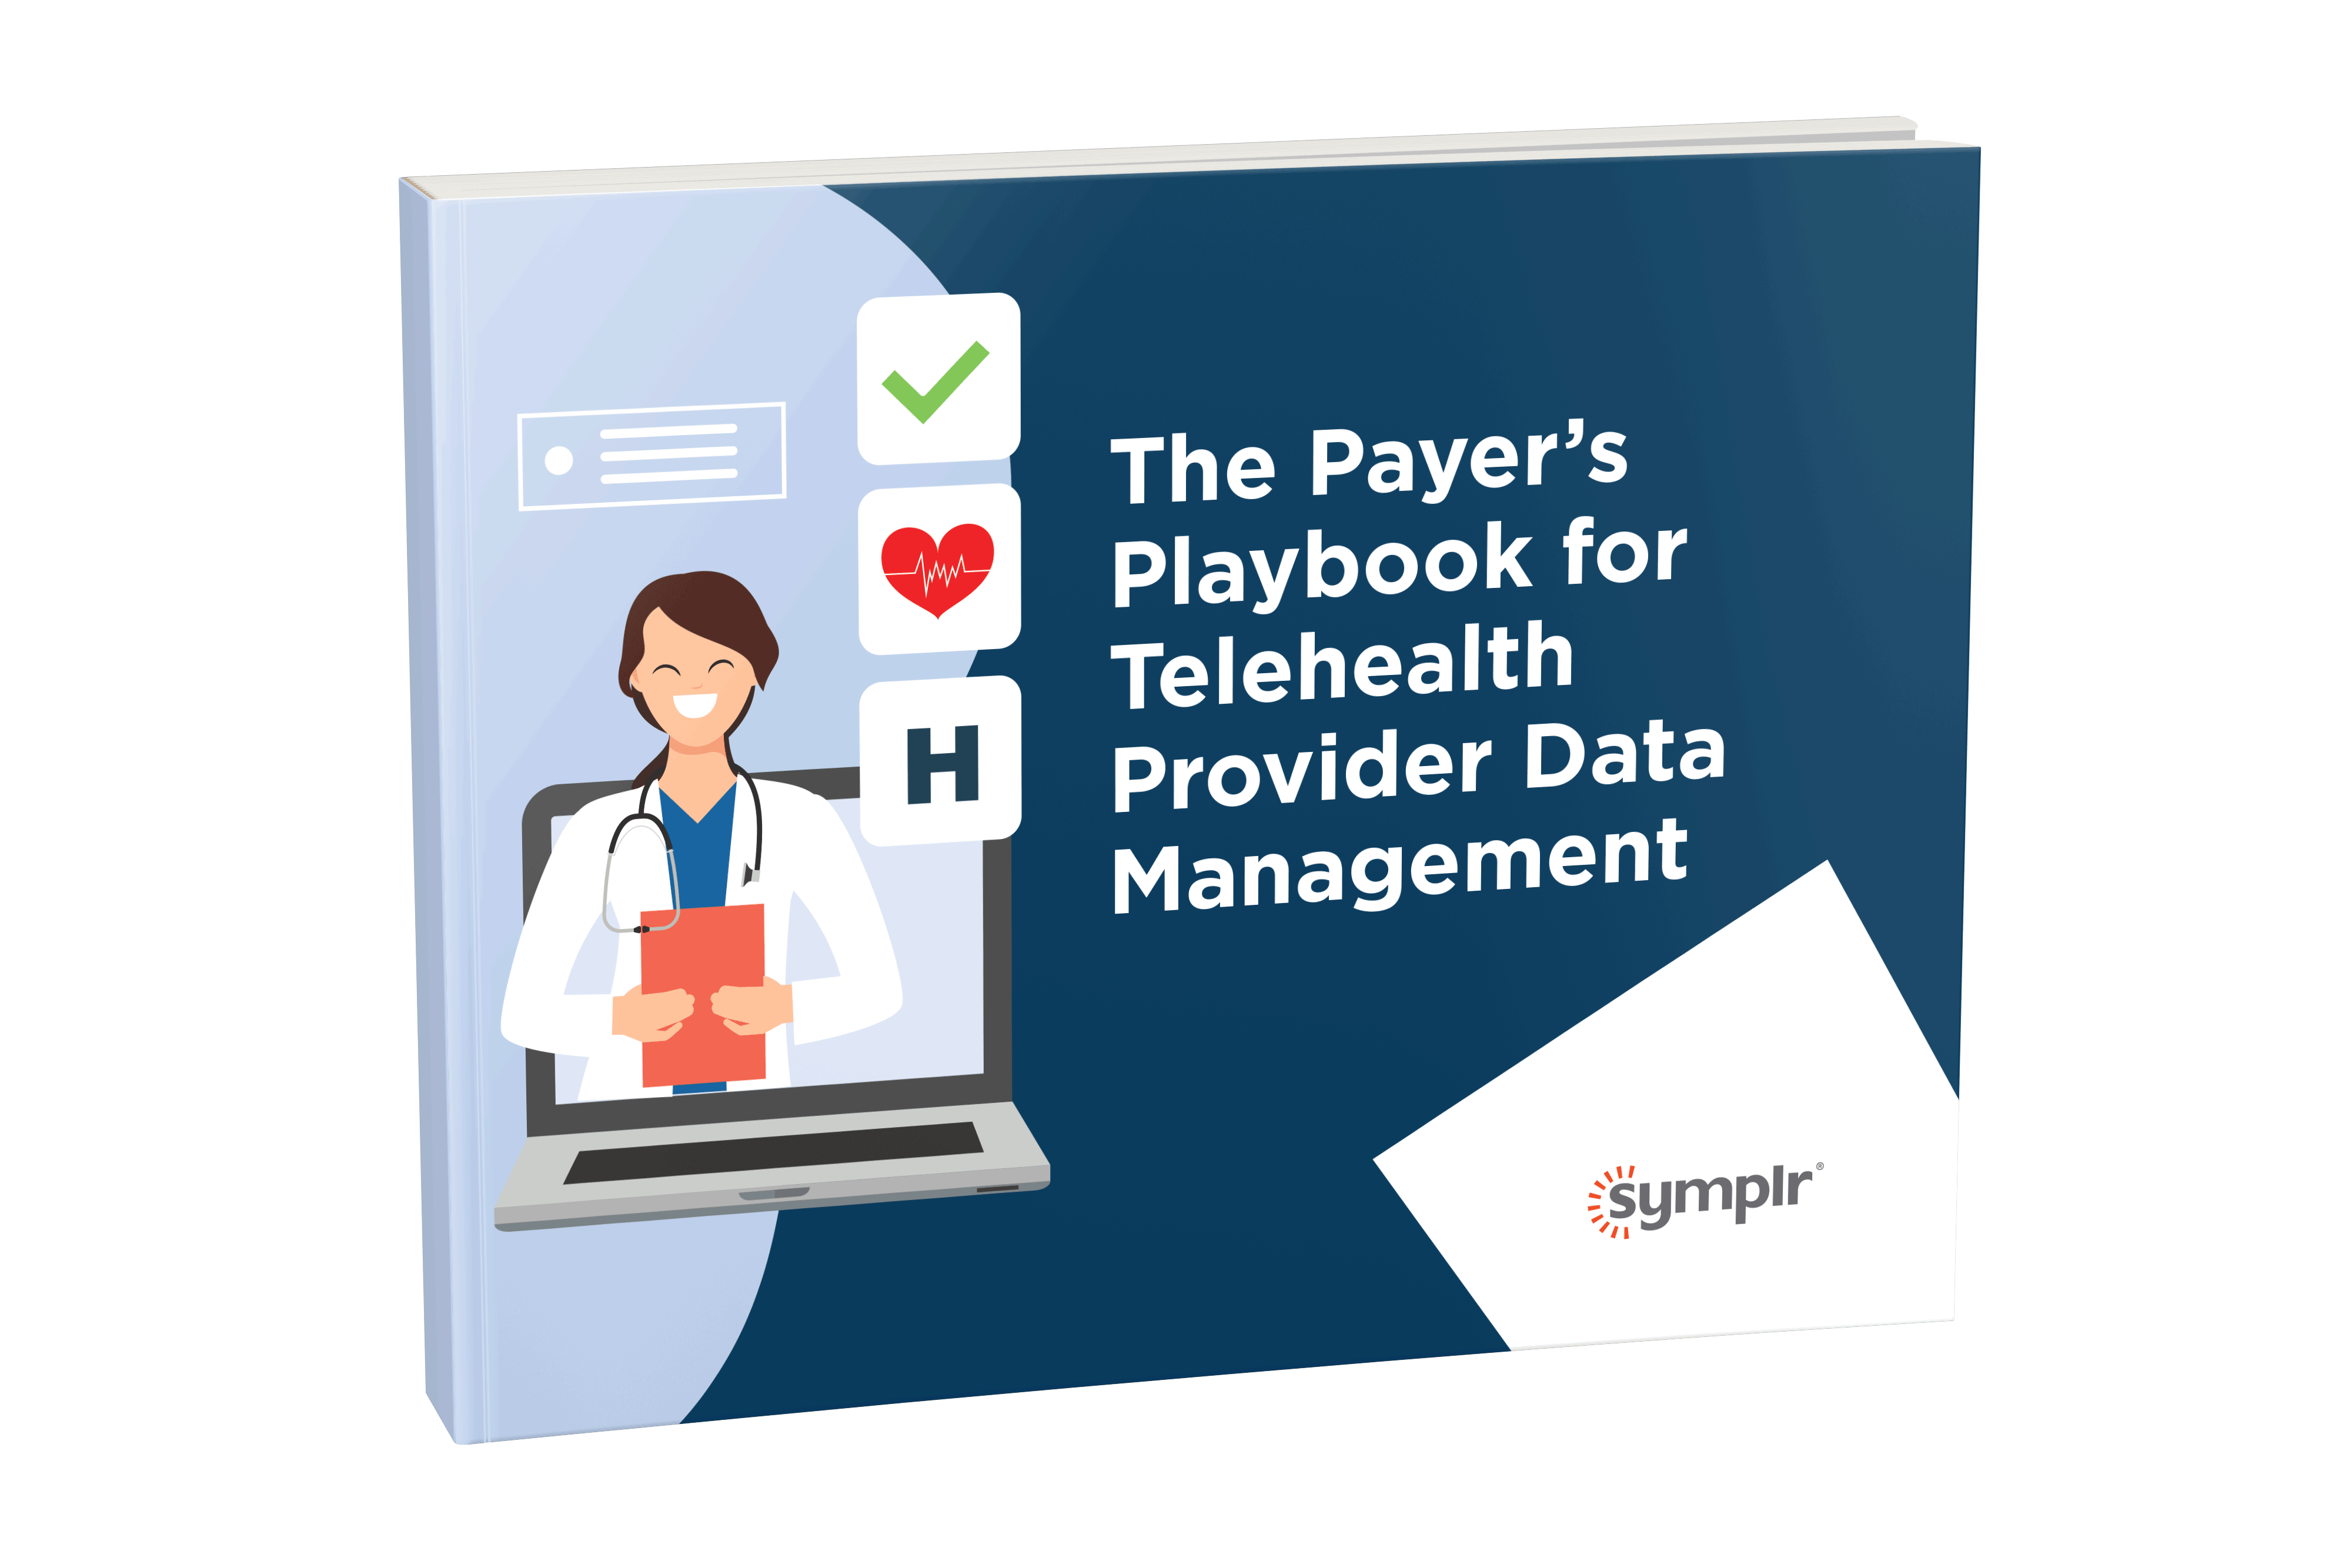 thumbnail-The-Payers-Playbook-for-Telehealth-PDM